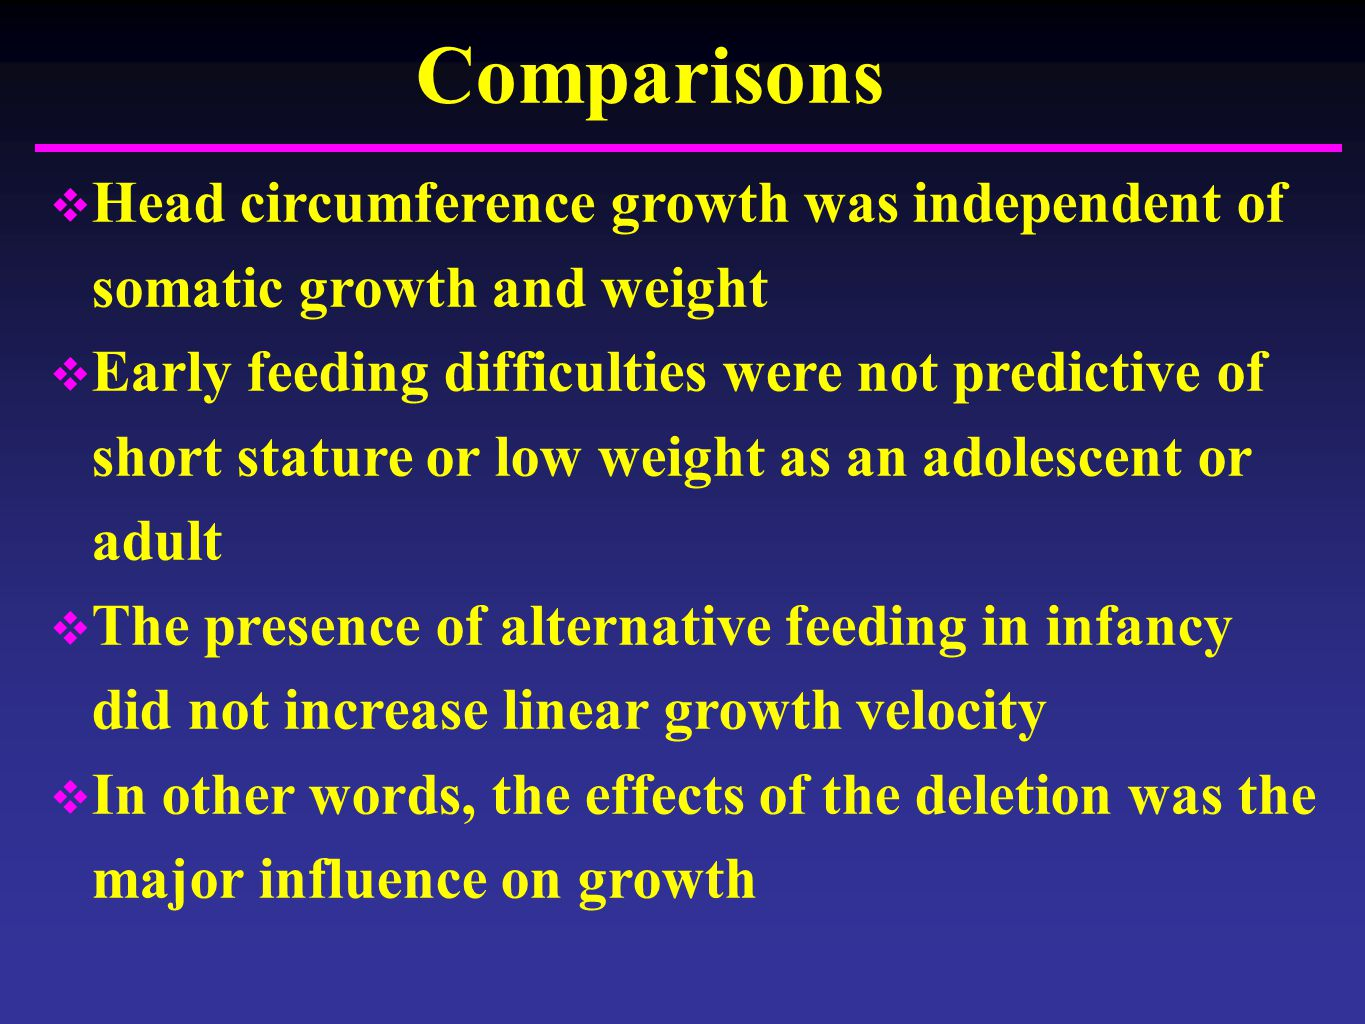 Comparisons  Head circumference growth was independent of somatic growth and weight  Early feeding difficulties were not predictive of short stature or low weight as an adolescent or adult  The presence of alternative feeding in infancy did not increase linear growth velocity  In other words, the effects of the deletion was the major influence on growth